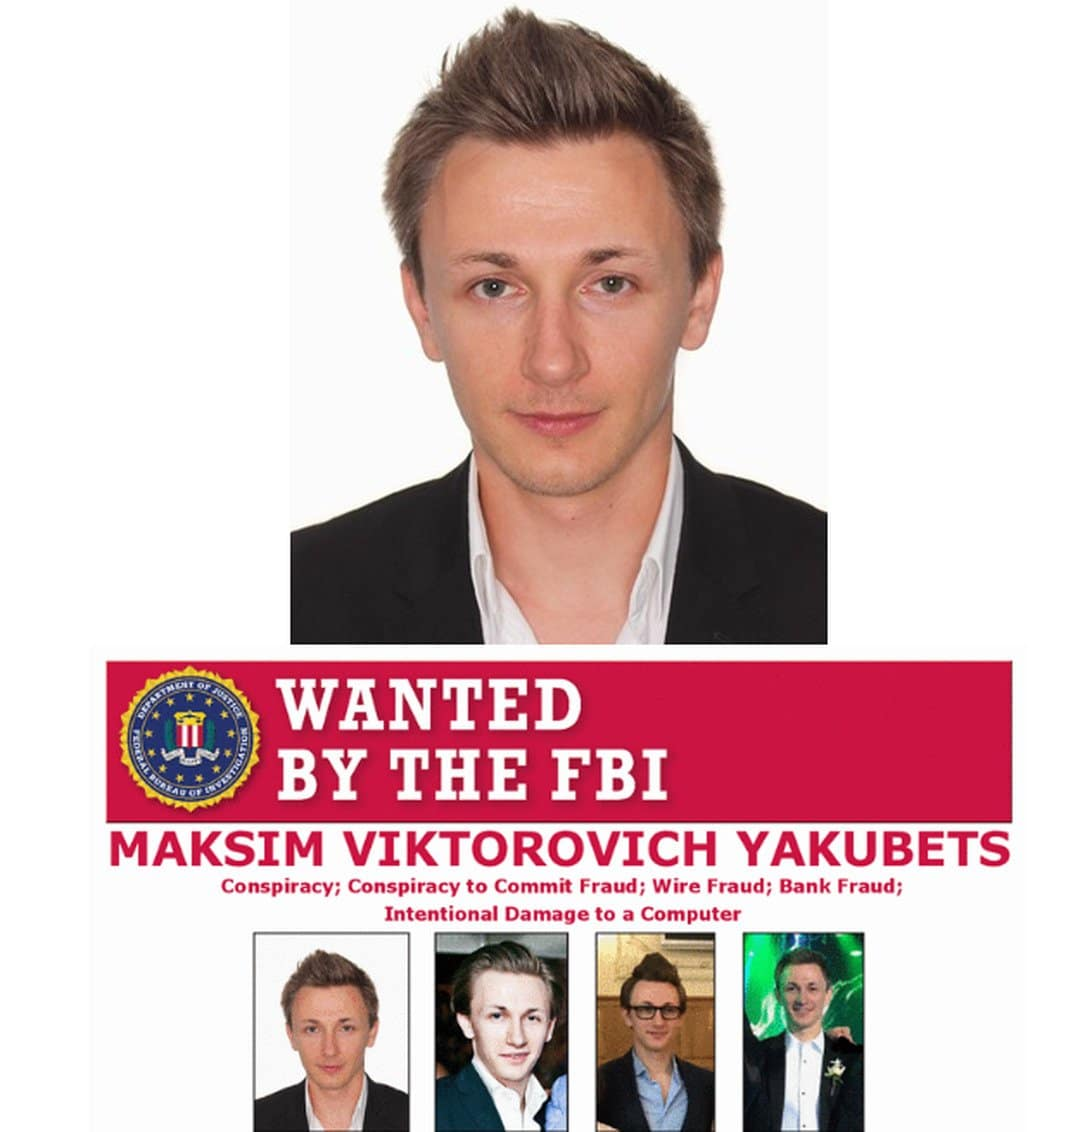 Wanted Poster for Maksim Yakubets